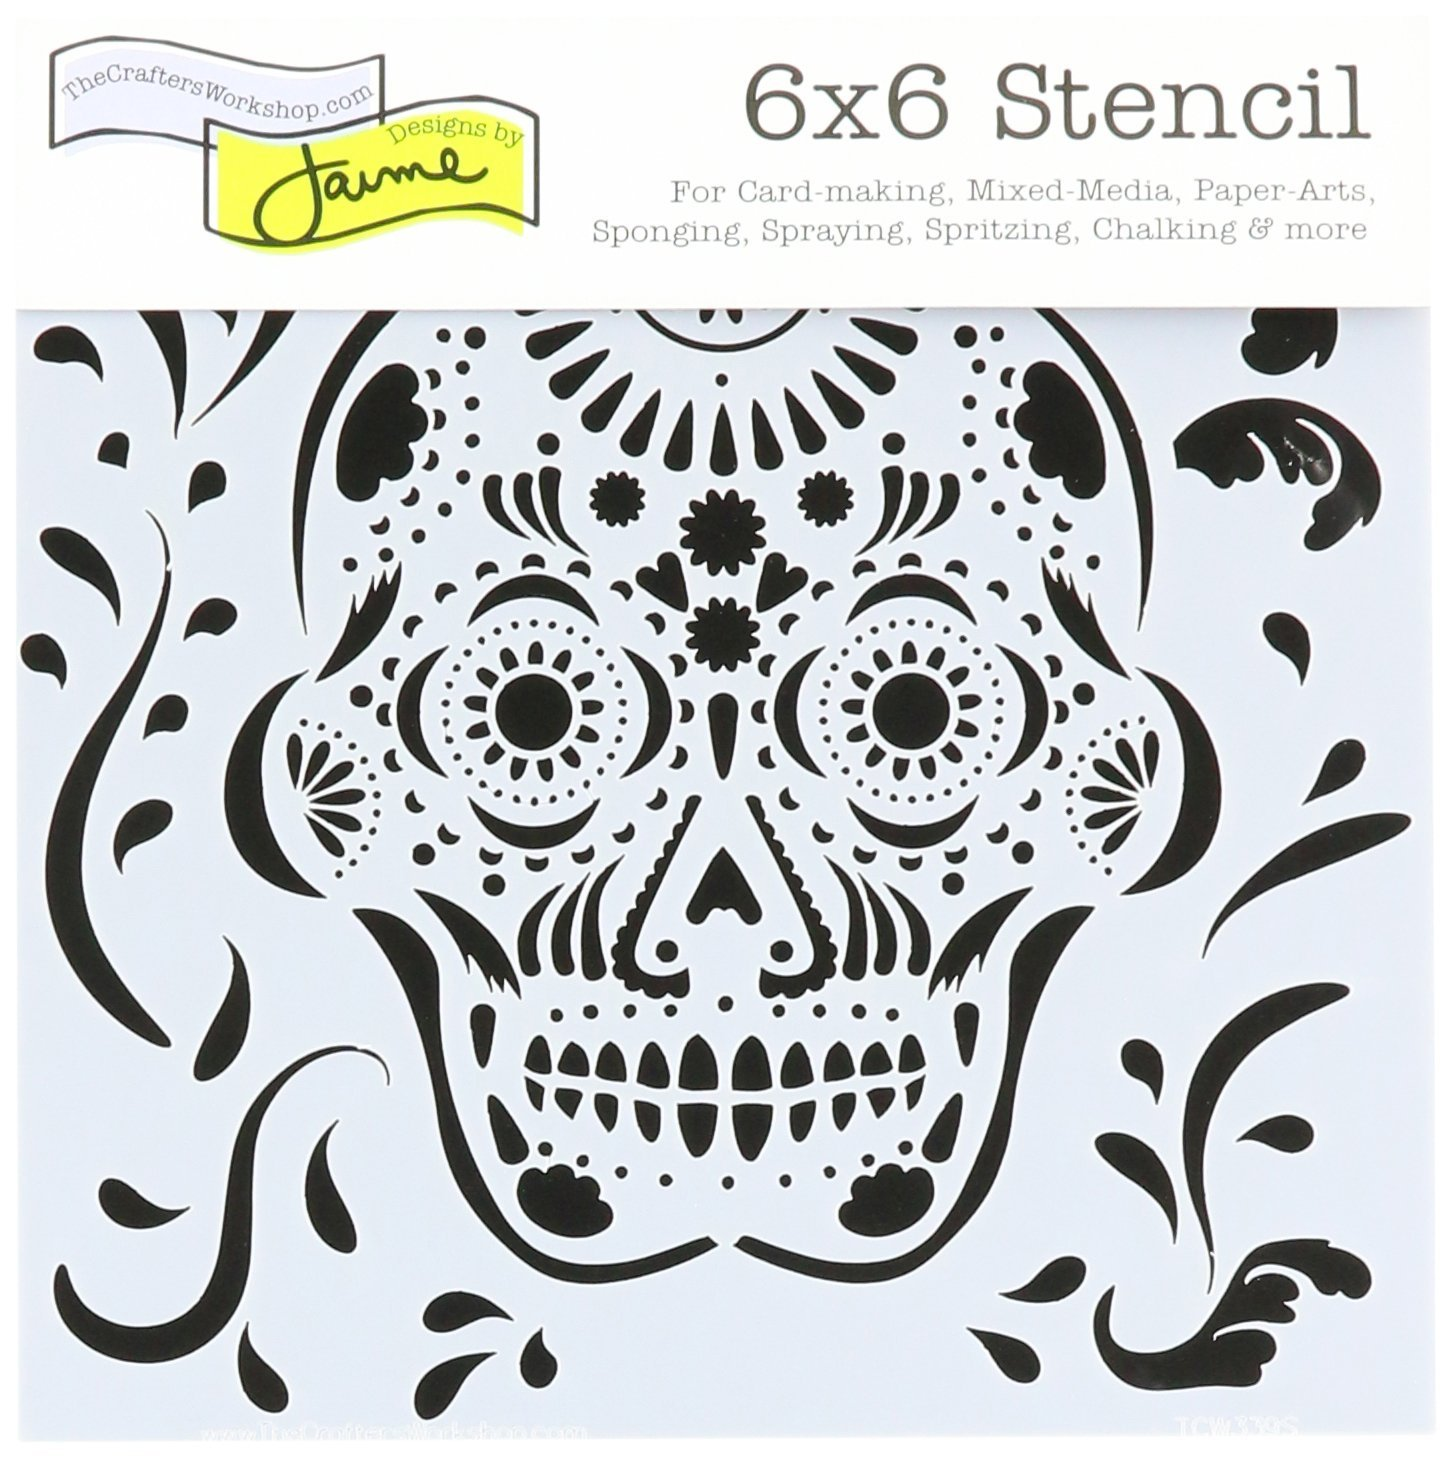 CRAFTERS WORKSHOP The TCW339S Stencil 6x6 Mexican Skull Stencil 6x6 Mexican SKL Notions - In Network